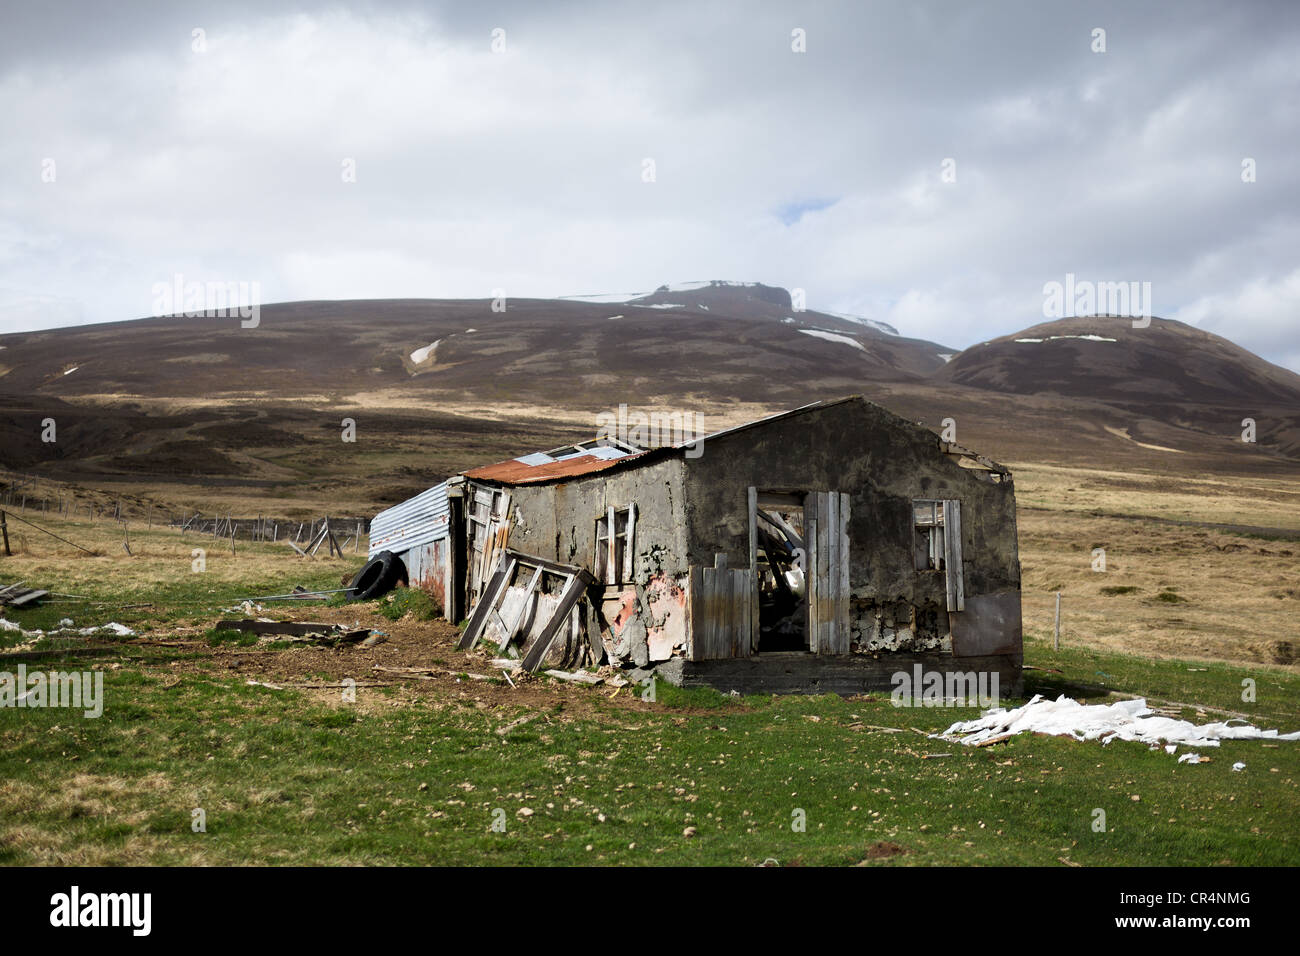 A derelict Icelandic farm building, Iceland, Scandinavia on an overcast day - Stock Image